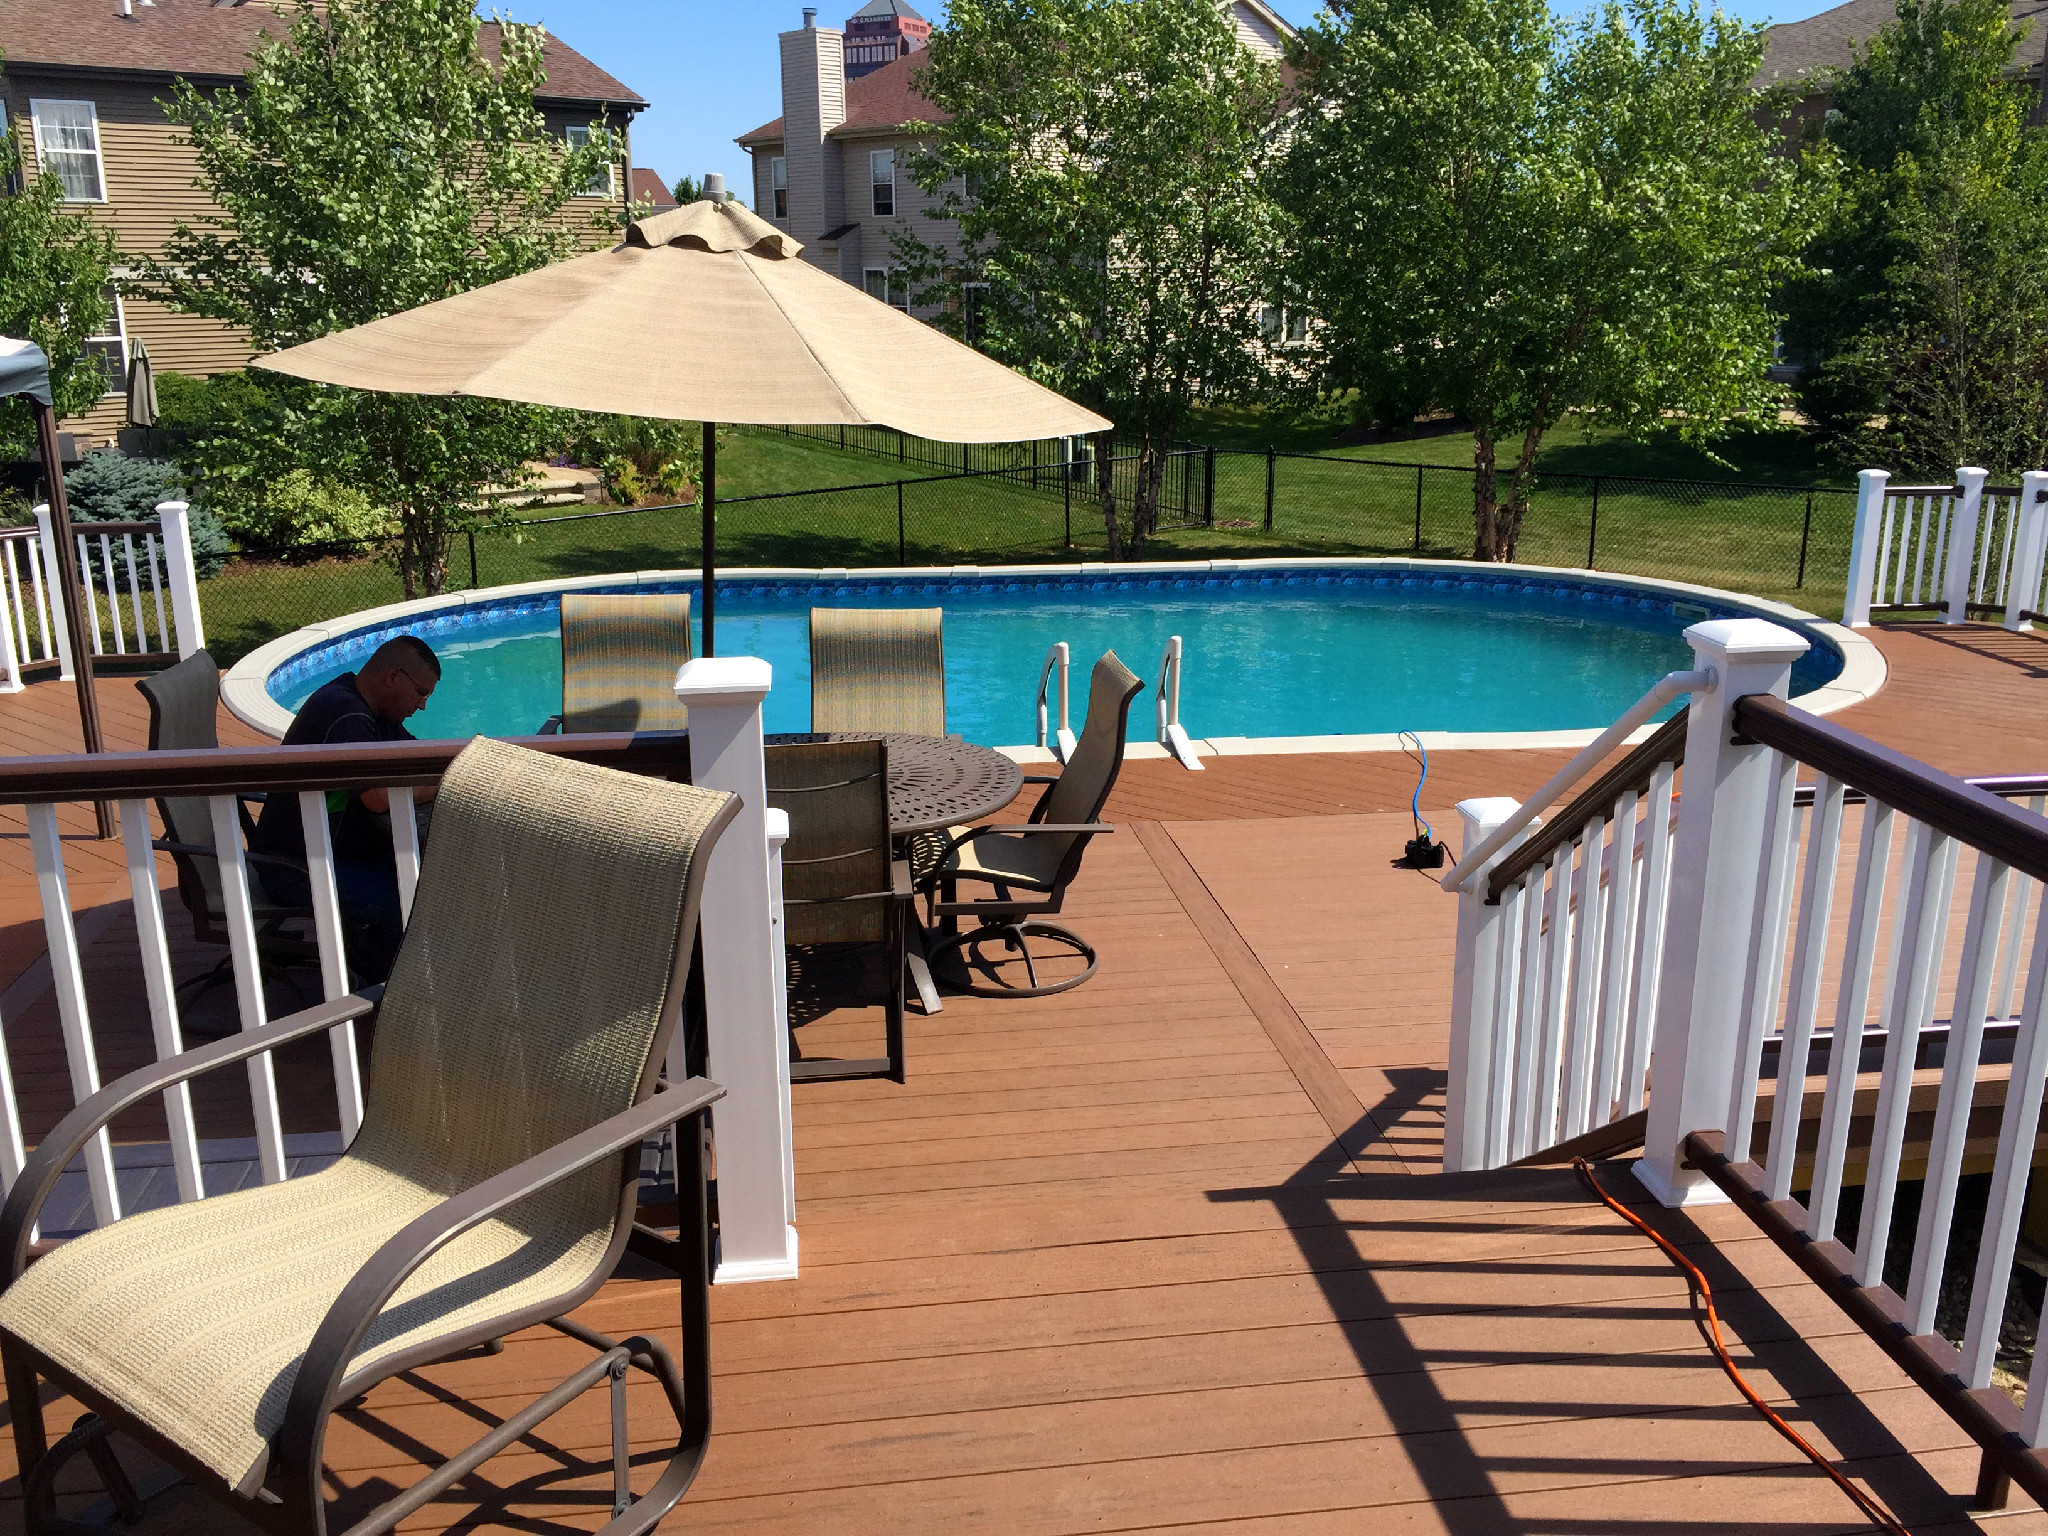 Above Ground Pool Deck Paver How Much Does A Chicagoland Pool Deck Cost  Archadeck Outdoor Living